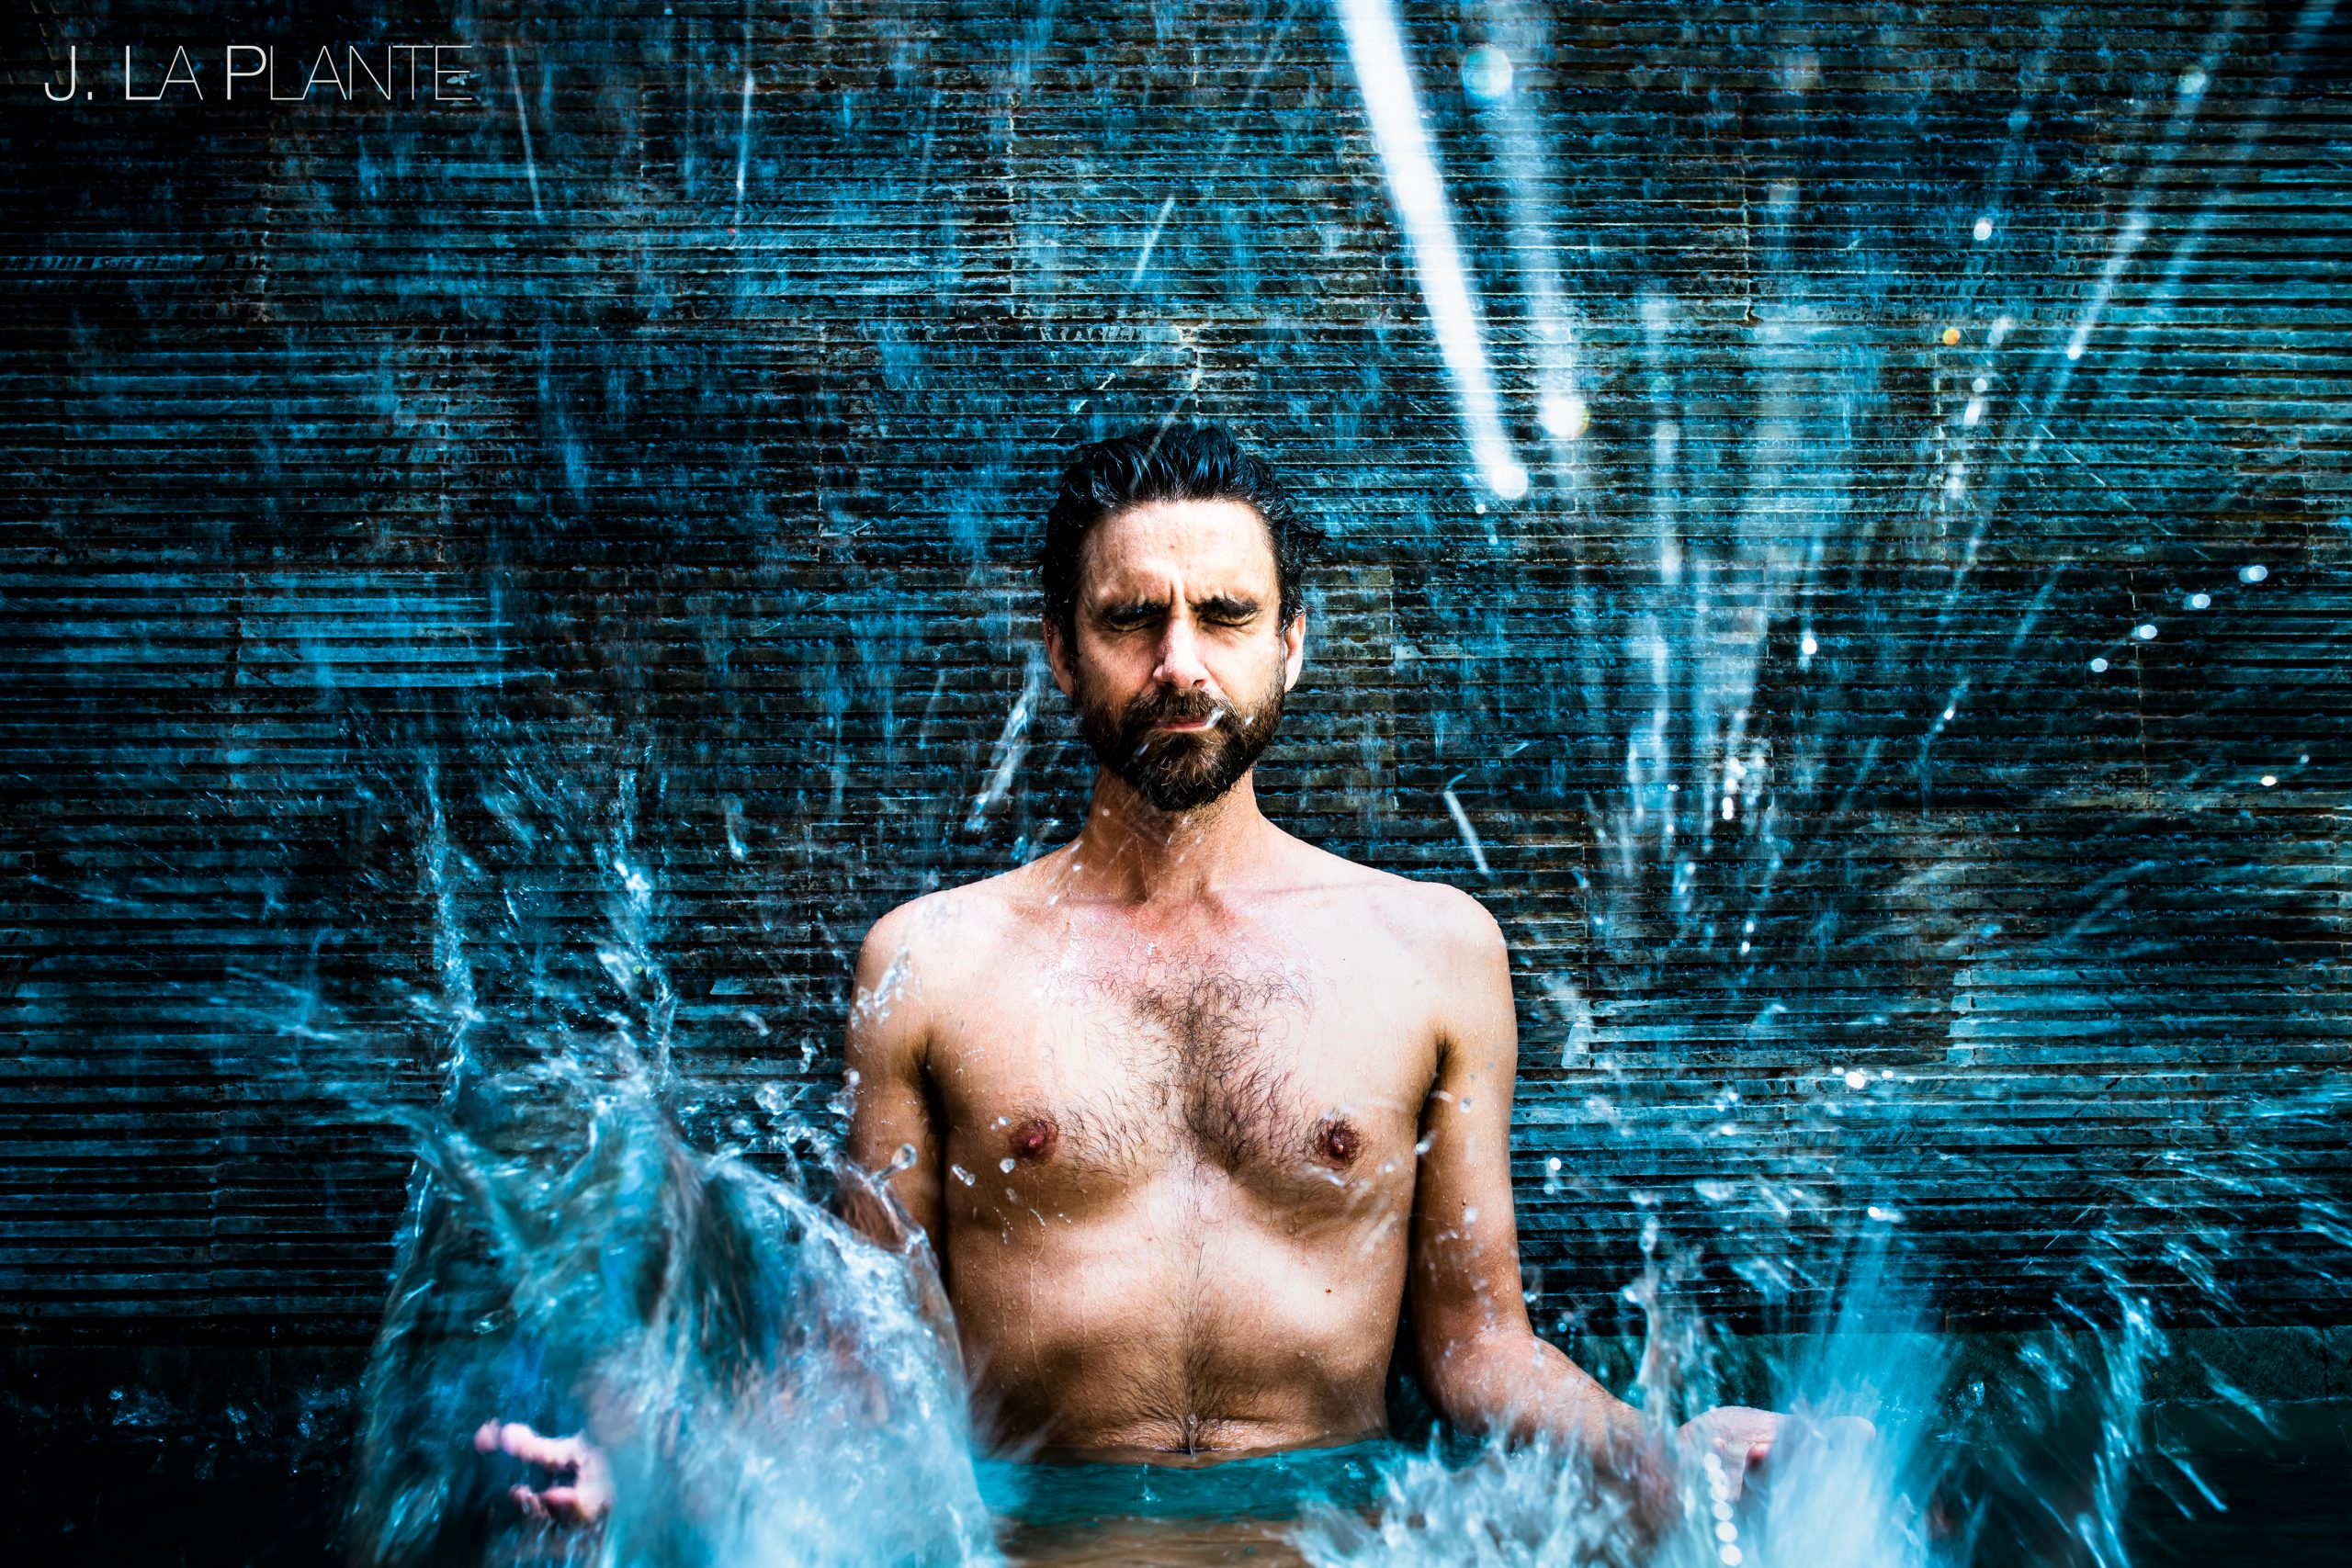 Man takes a meditative pose among the chaos of splashing water